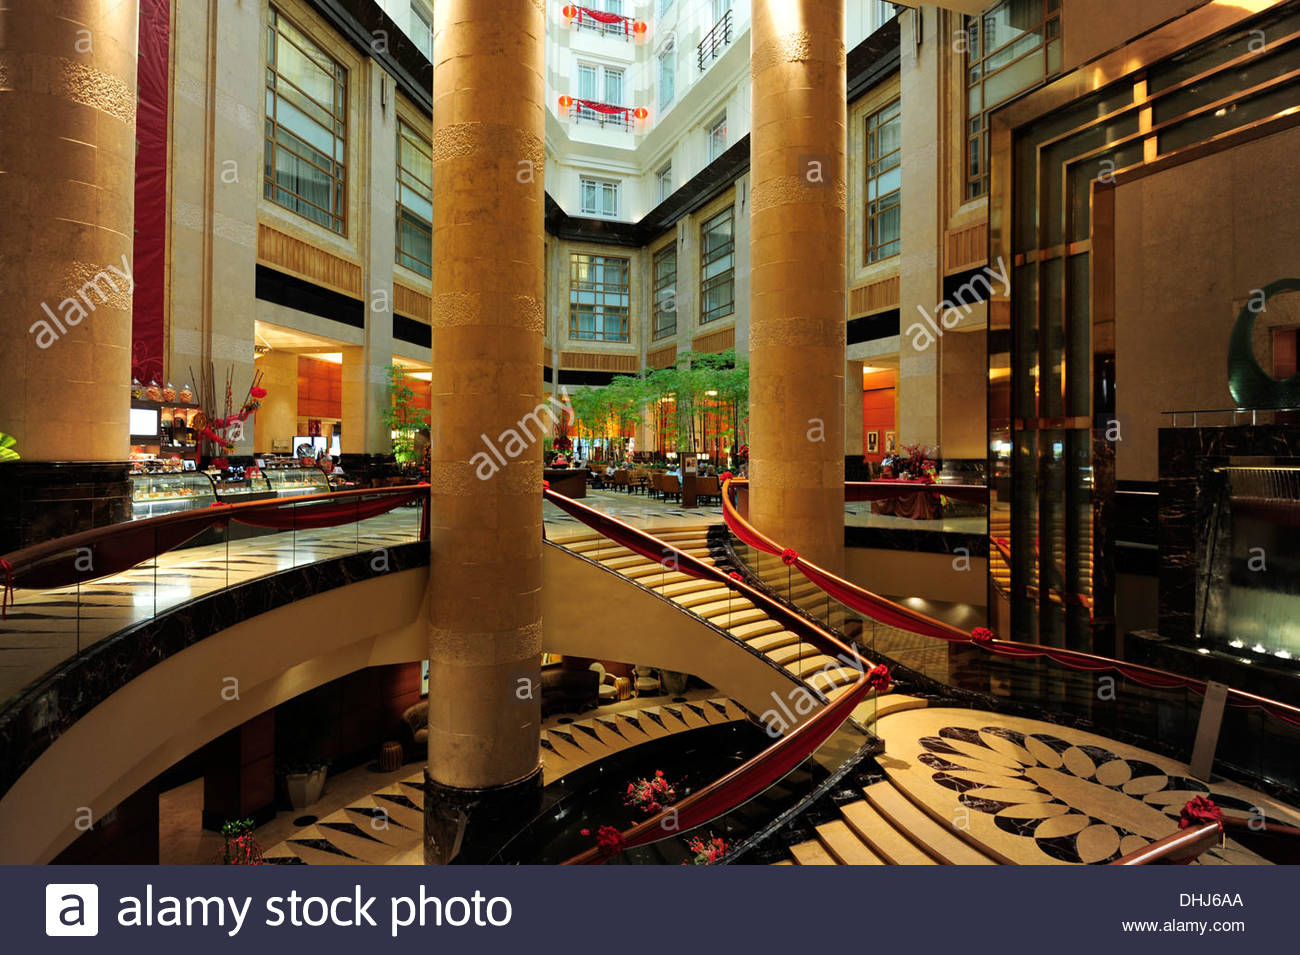 Staircase in The Fullerton Hotel, Singapore, Asia - Stock Image